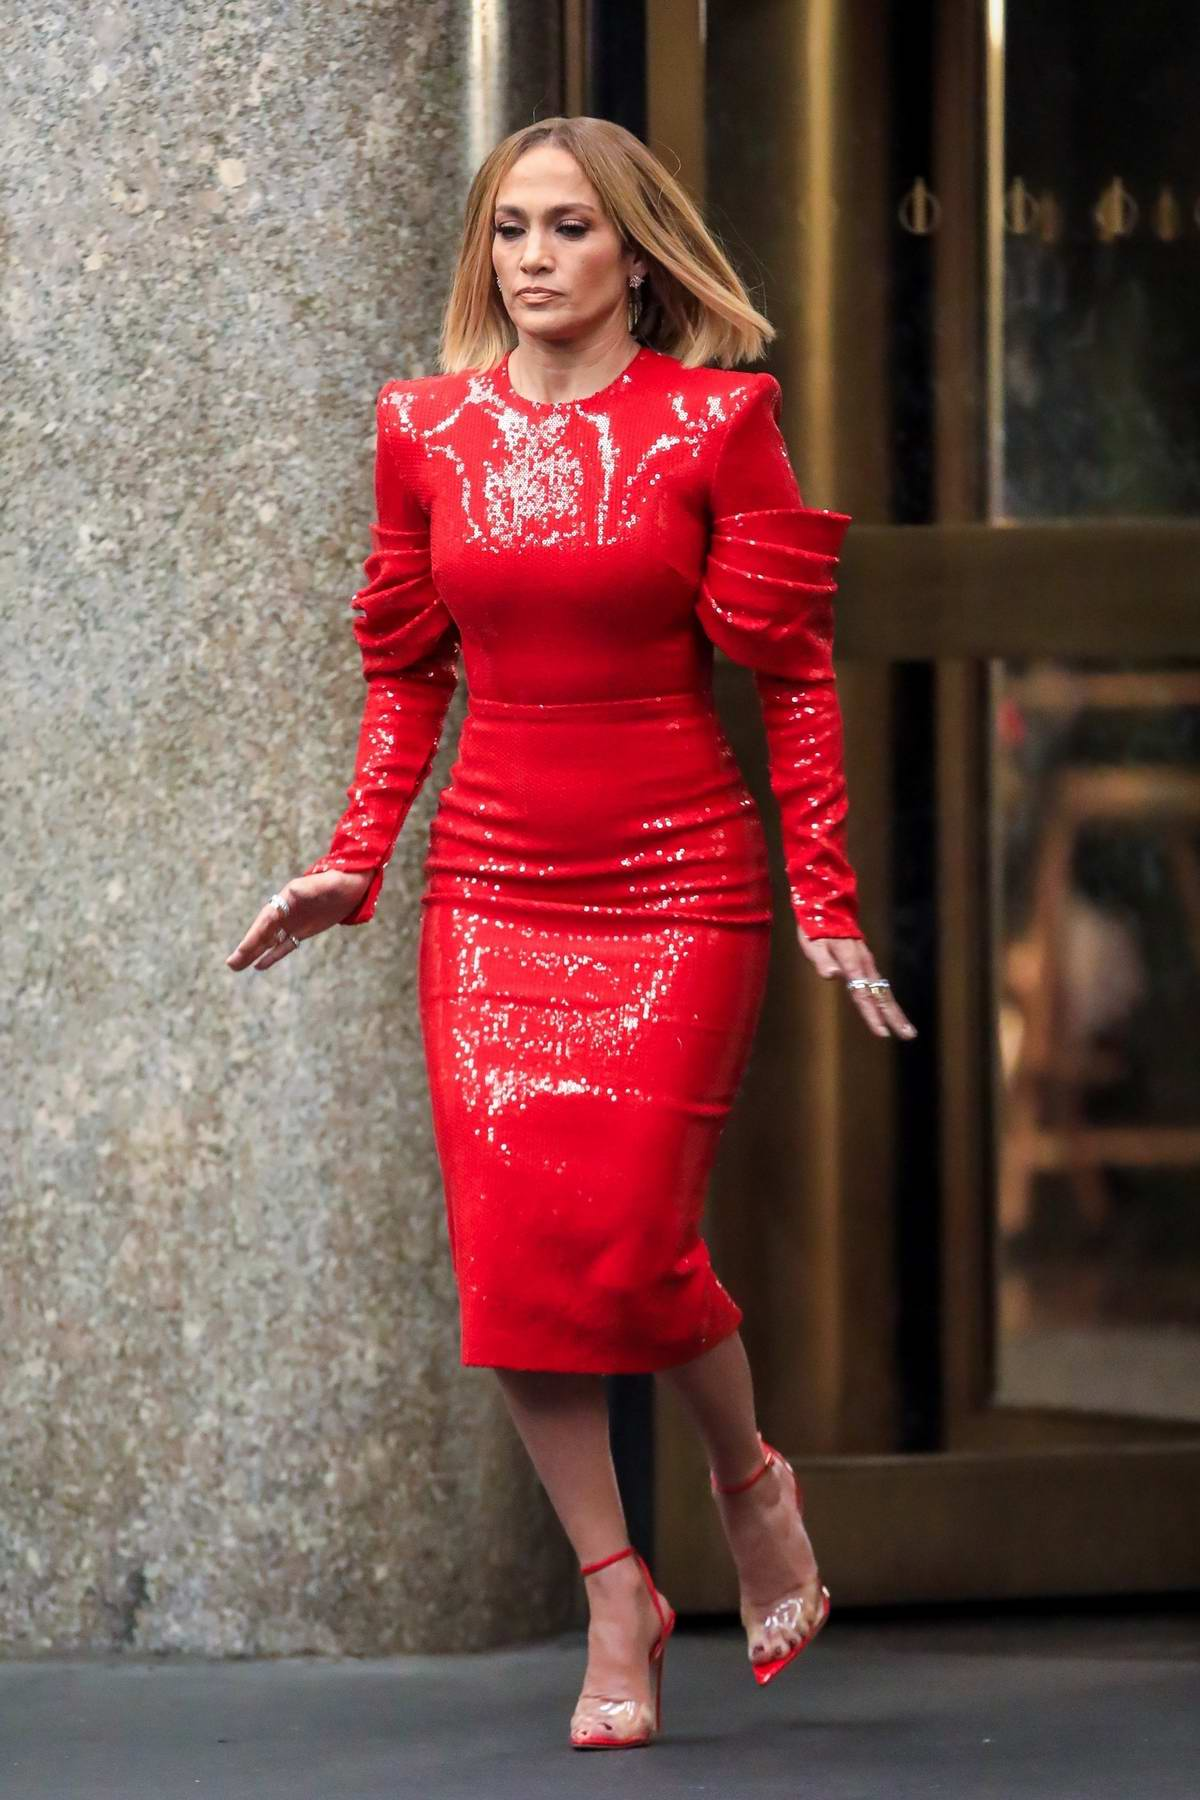 Jennifer Lopez seen wearing a bright red dress while filming 'Marry Me' at Rockefeller Plaza in New York City